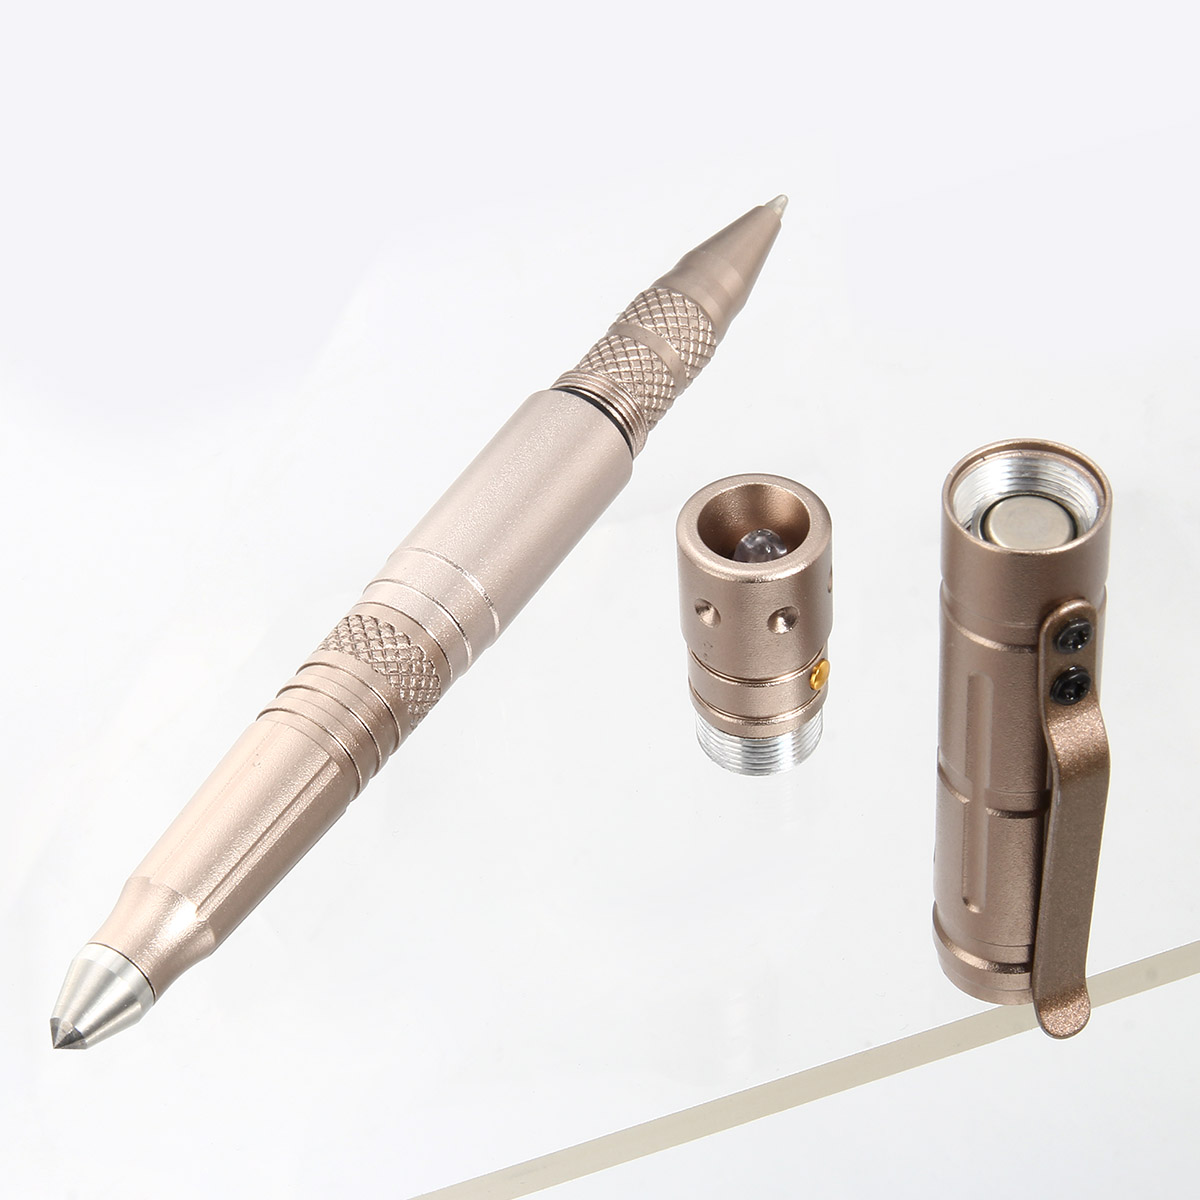 Multi-function Tactical Pen Survival Military LED Flashlight Glass Breaker Self Defense Tool Ballpoint Pens WIF66